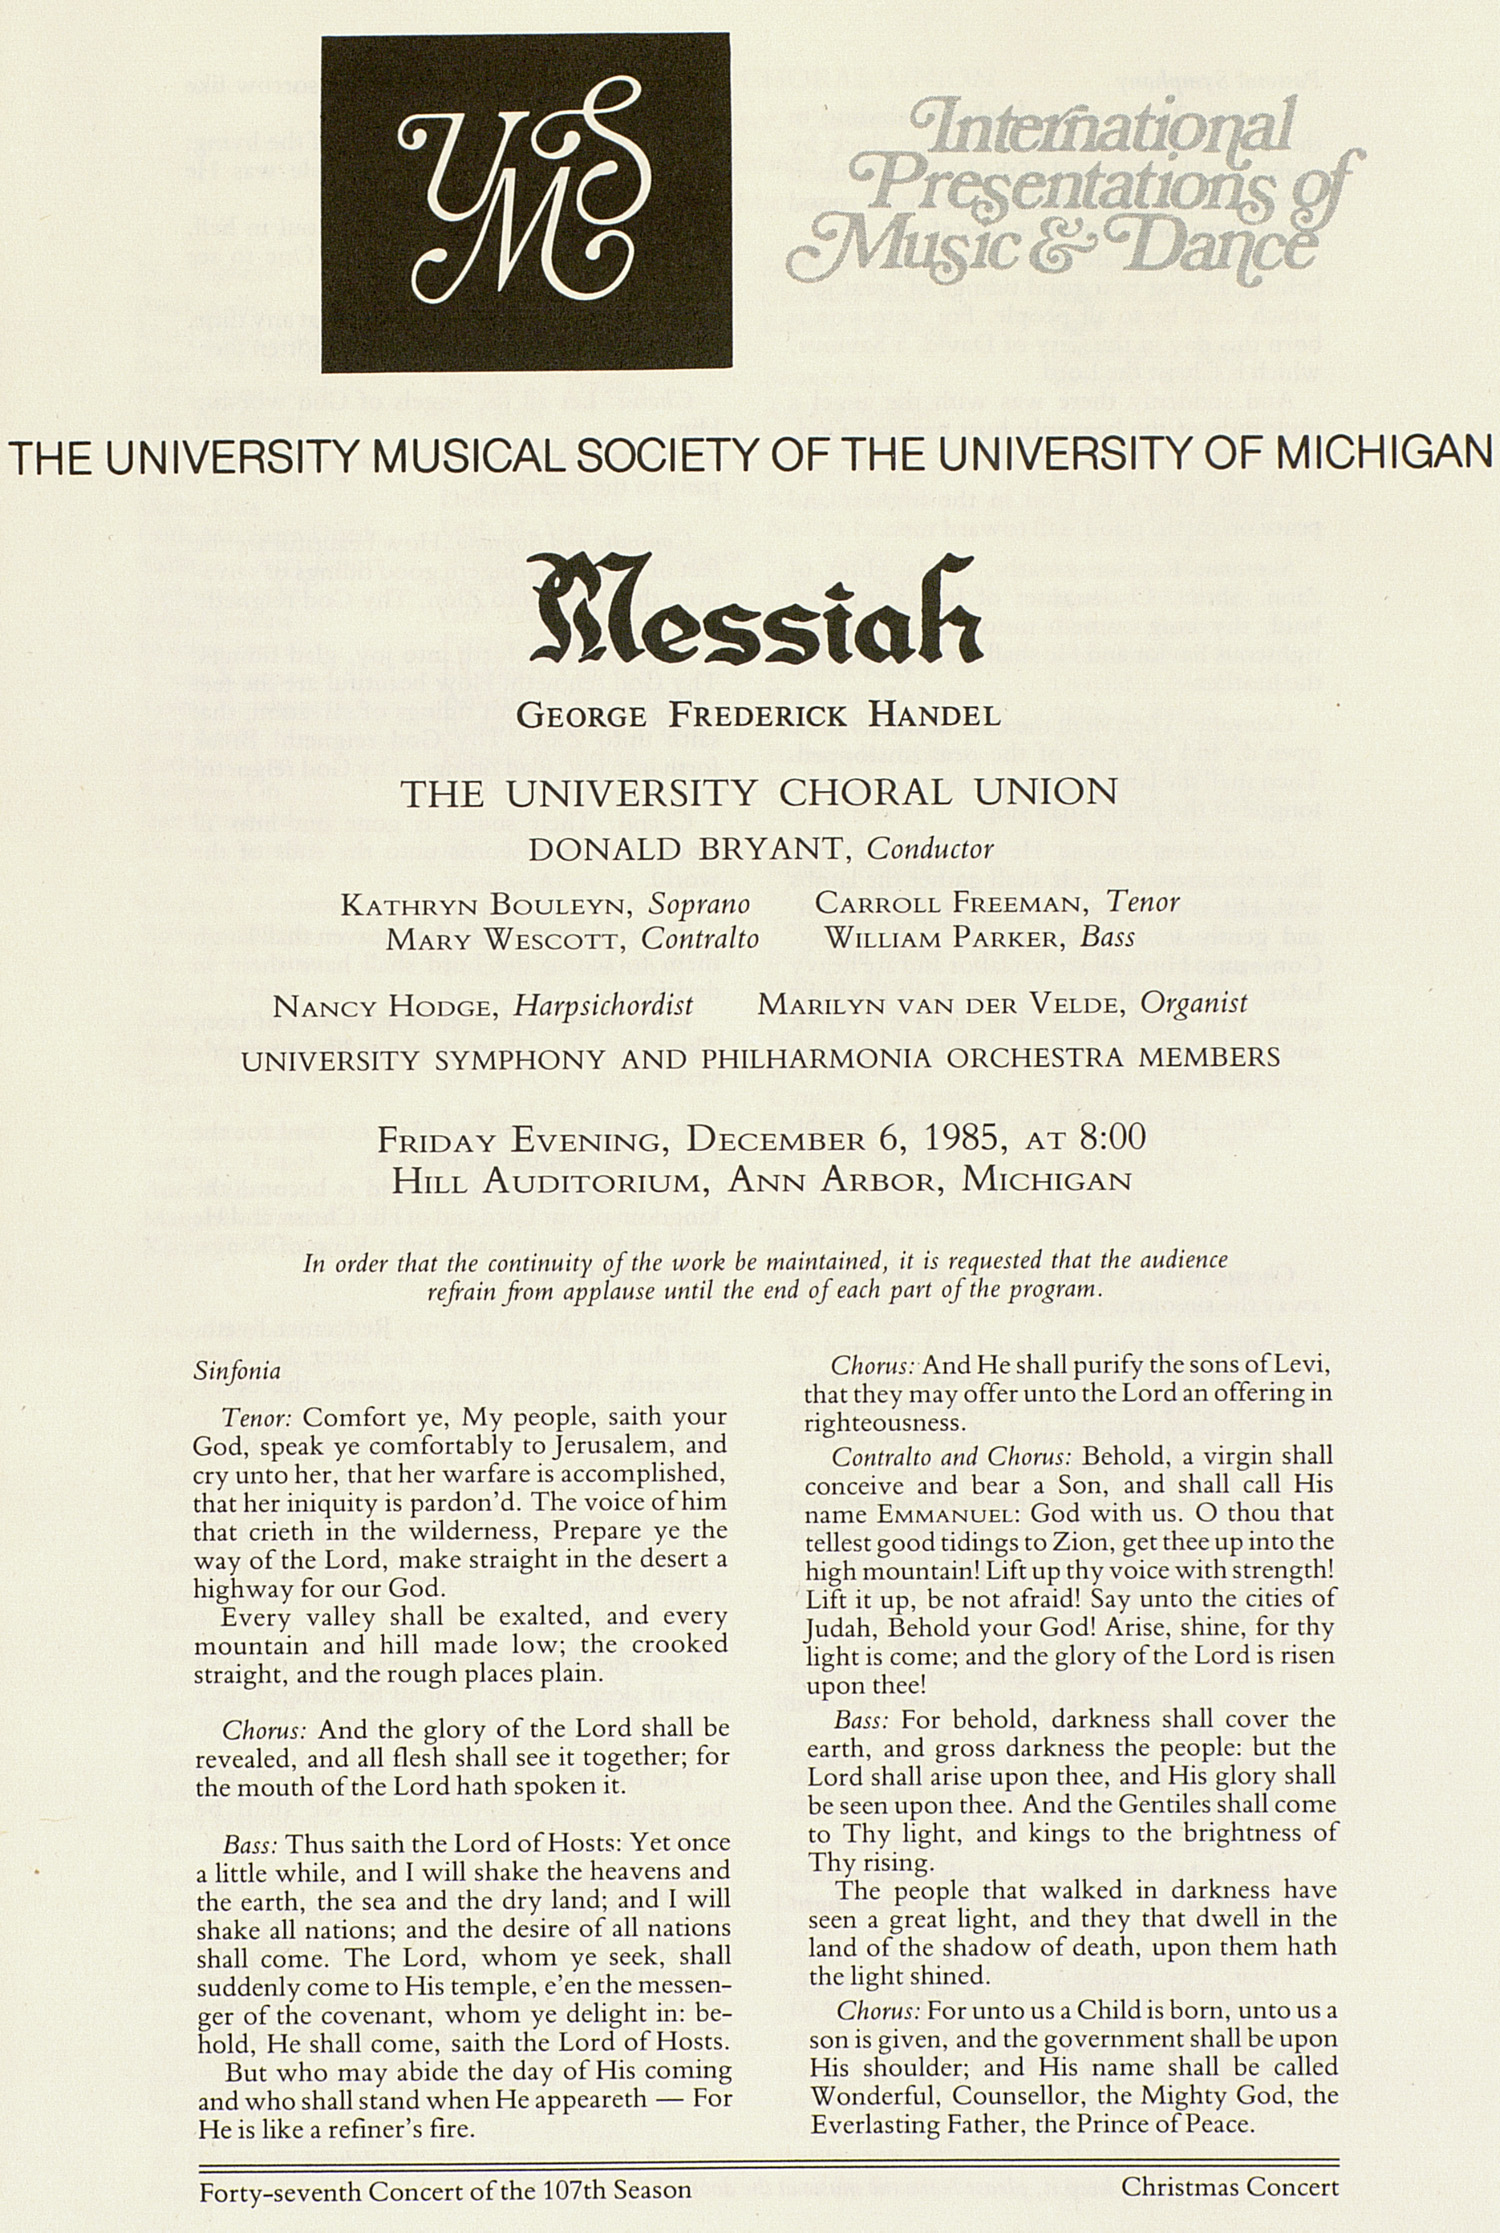 UMS Concert Program, December 6, 1985: Messiah -- George Frederick Handel image